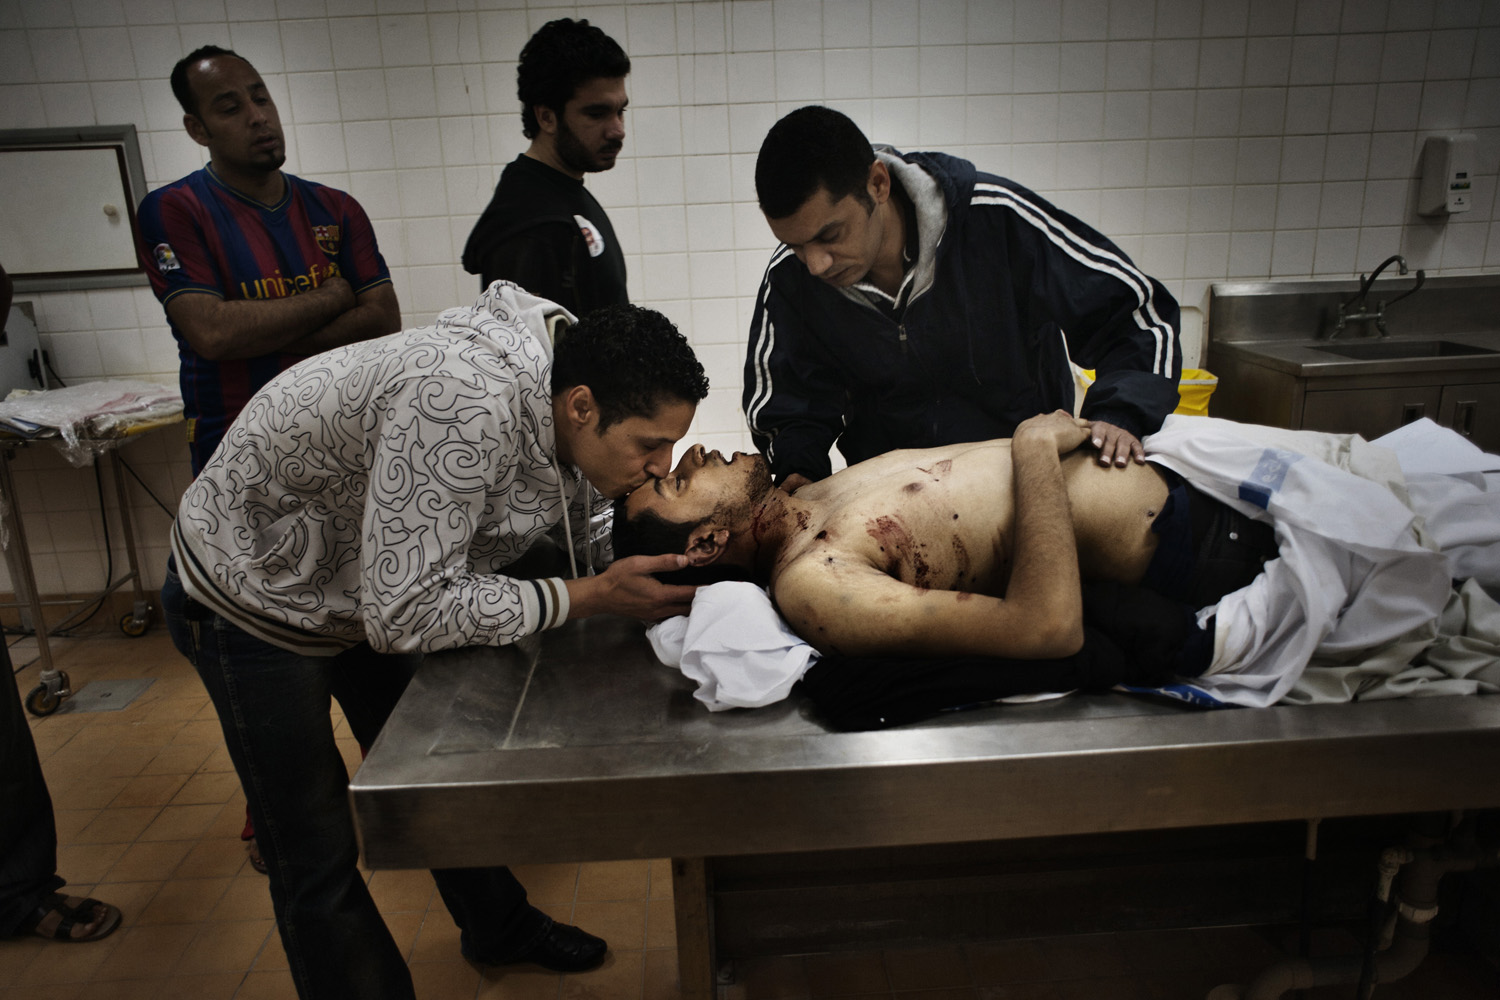 A man kisses his brother in the morgue of Bahrain's Central hospital. The man was shot with a pellet gun by Bahraini police in February, 2011.